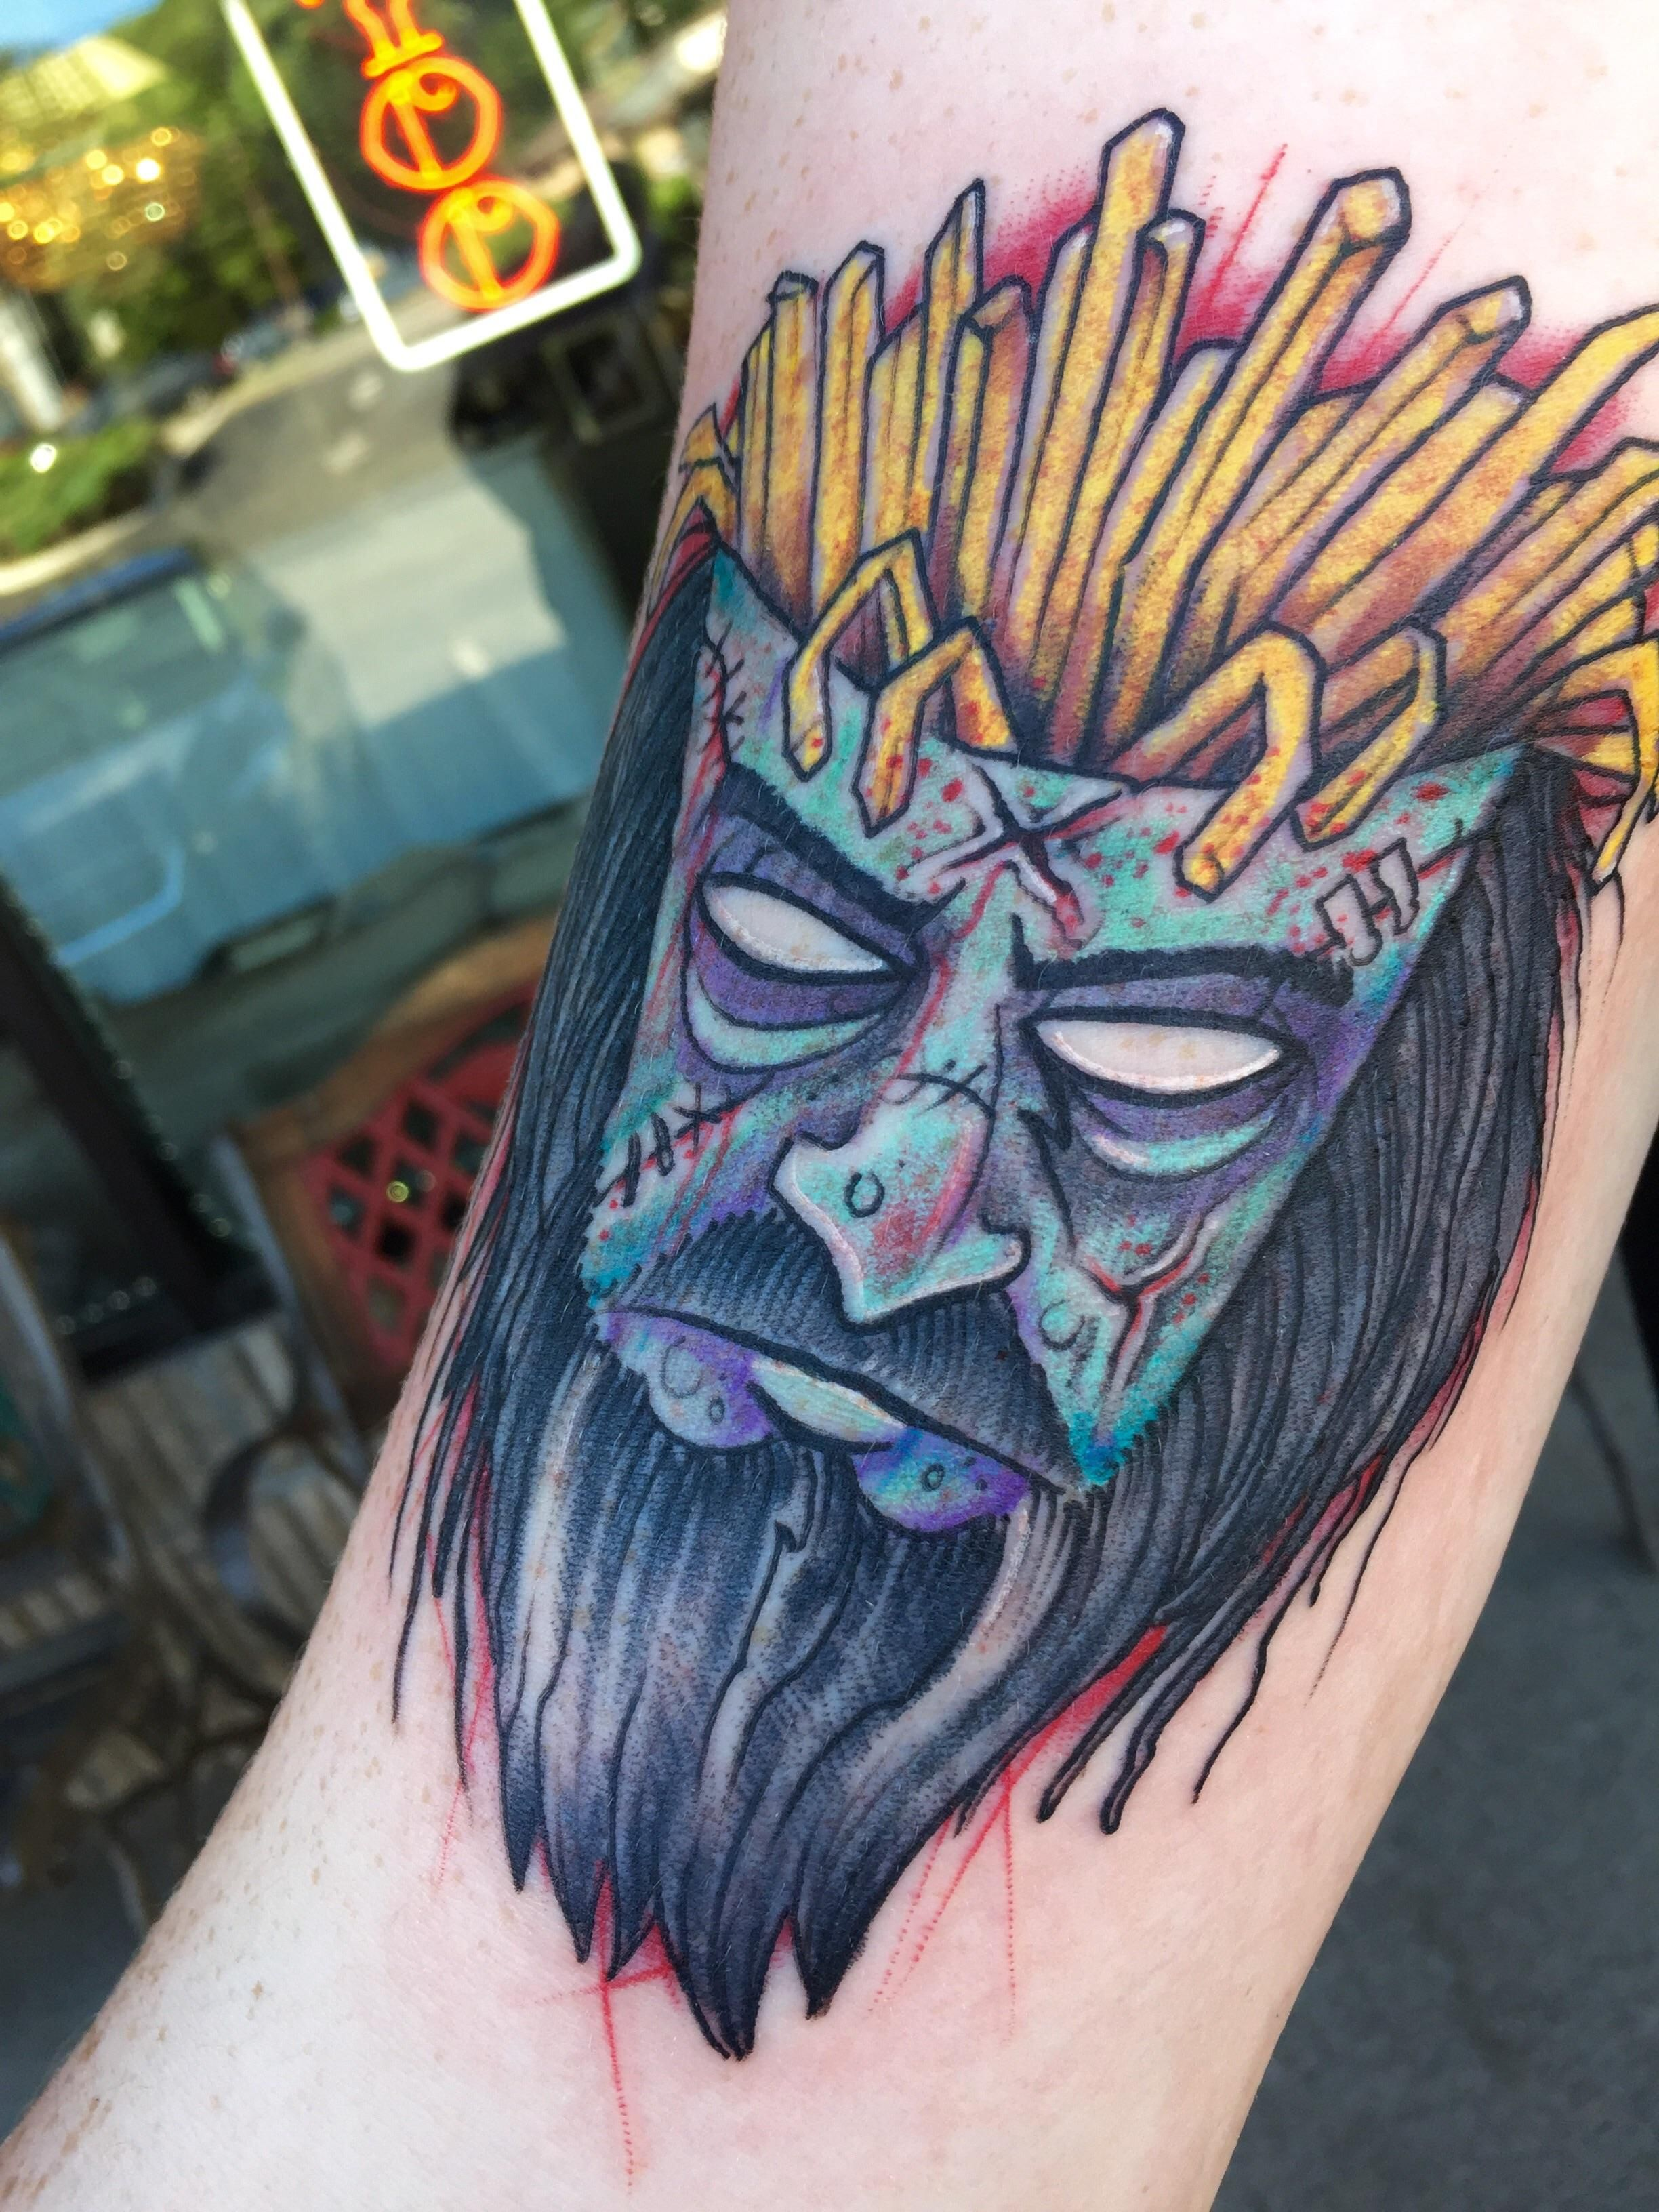 Frylock zombie done by shawn at north jersey tattoo in